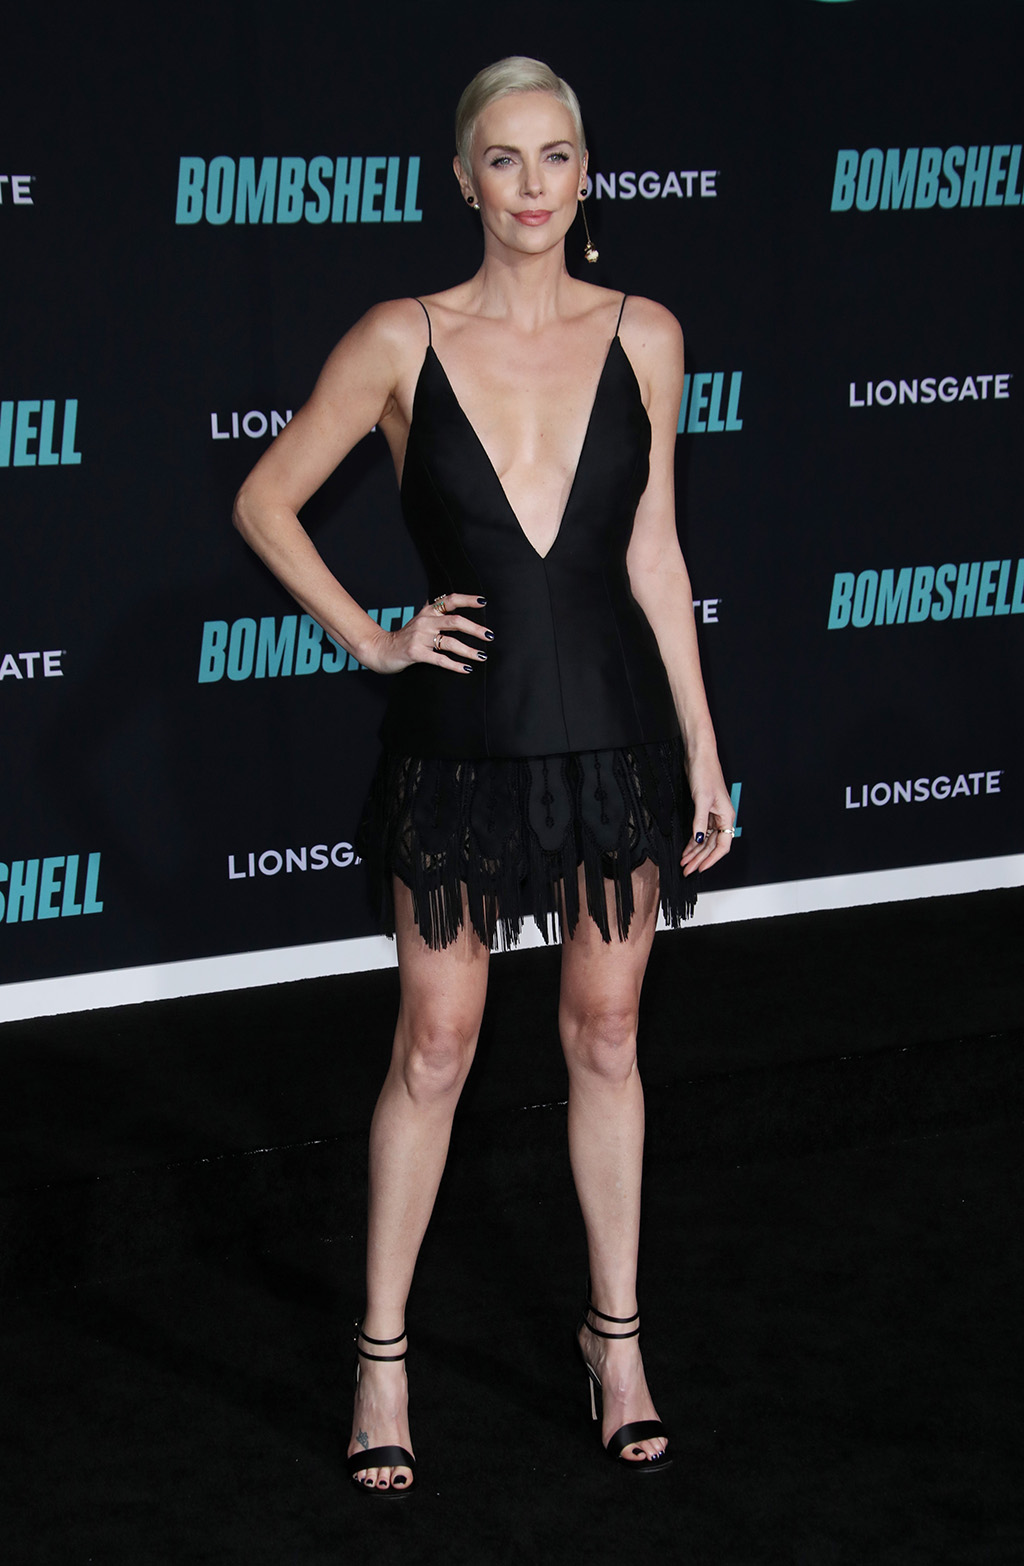 Charlize Theron, dior, minidress, low cut dress, cleavage, sandals, 'Bombshell' film premiere, Arrivals, Regency Village Theatre, Los Angeles, USA - 10 Dec 2019Wearing Dior Same Outfit as catwalk model *10325126ai